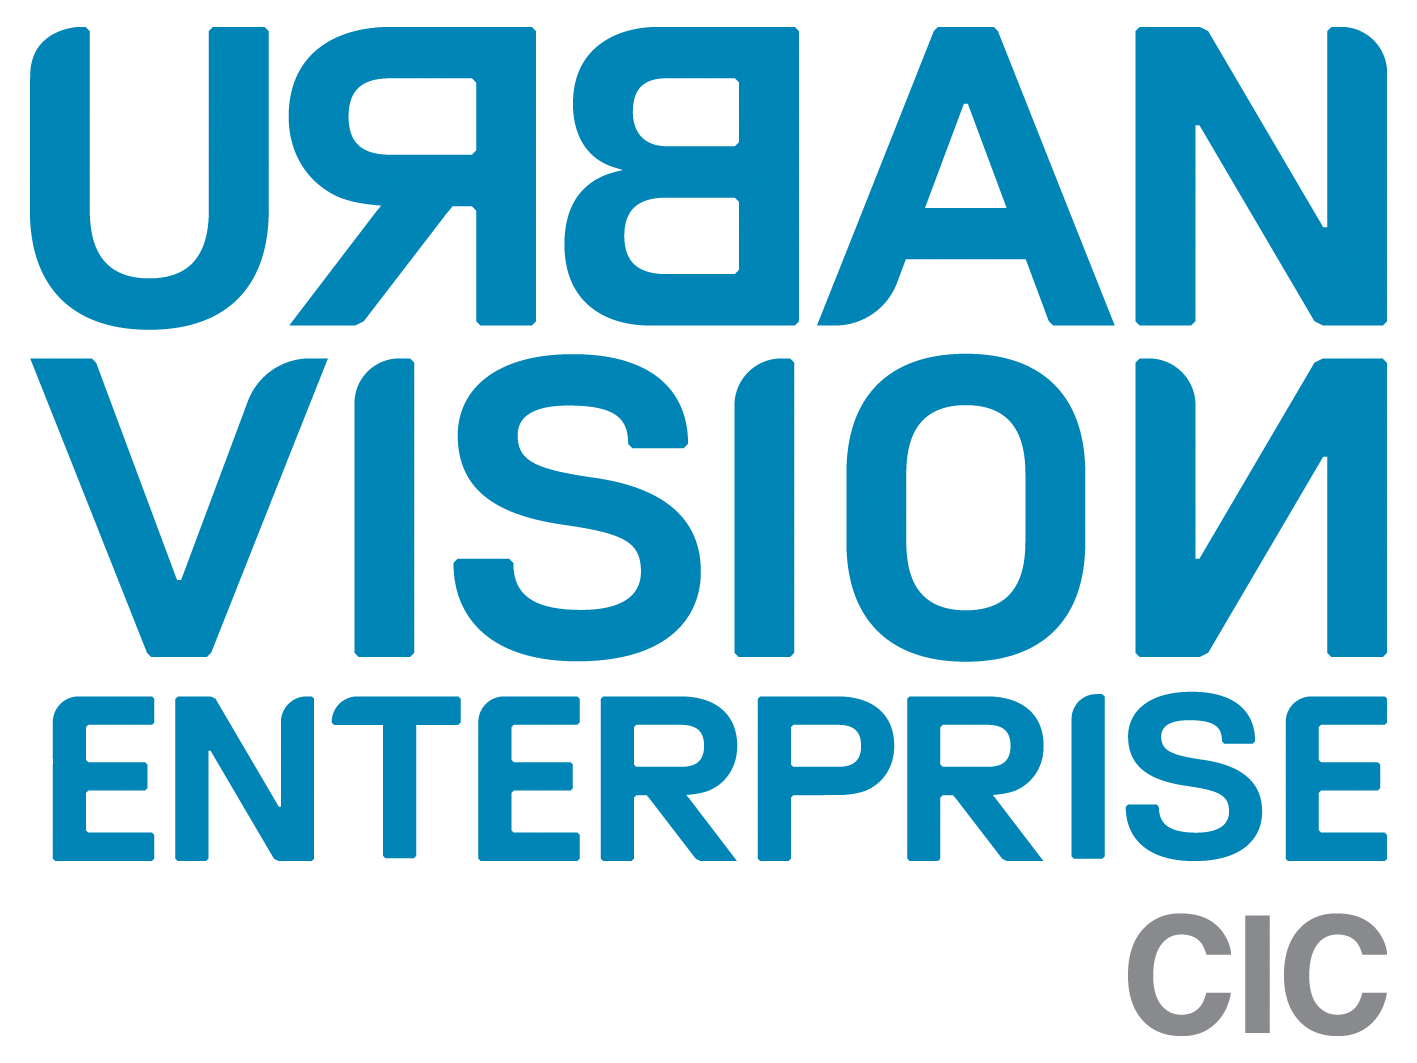 Urban Vision Enterprise CIC